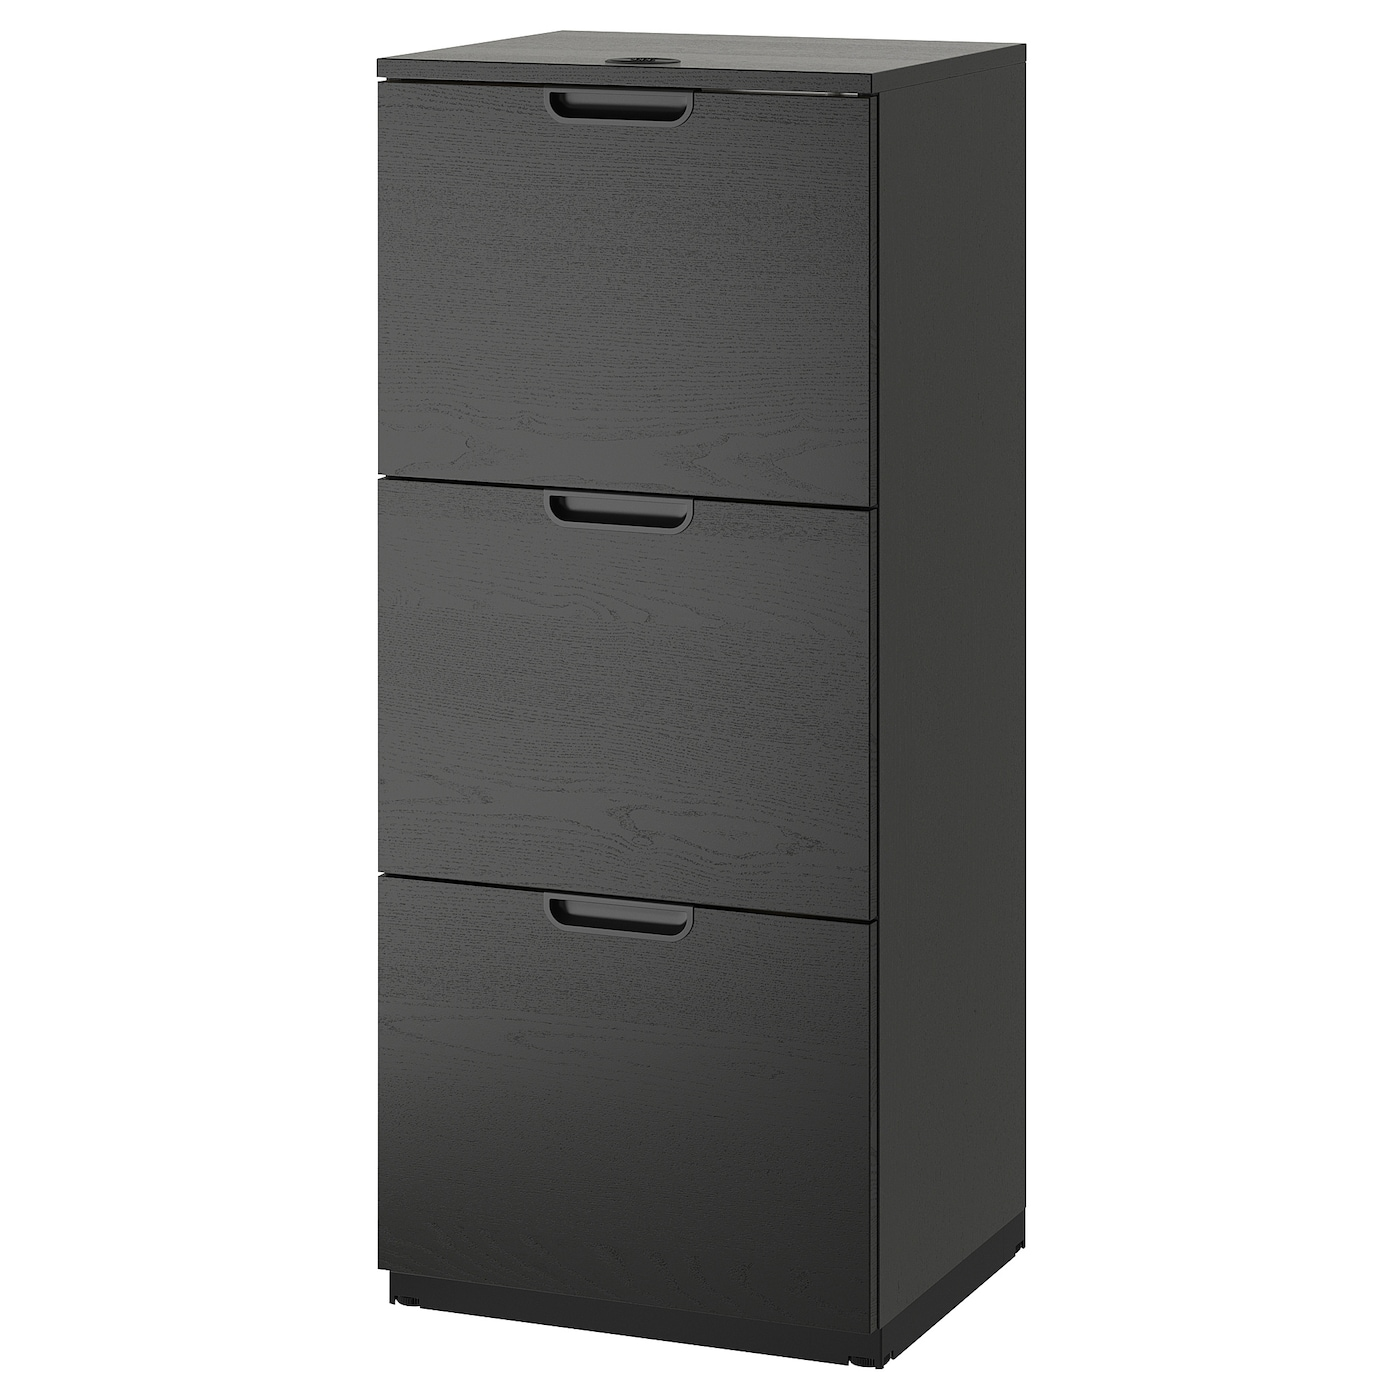 galant file cabinet black stained ash veneer 51 x 120 cm ikea rh ikea com 2004 Galant File Cabinet IKEA IKEA Galant File Cabinet Rolling